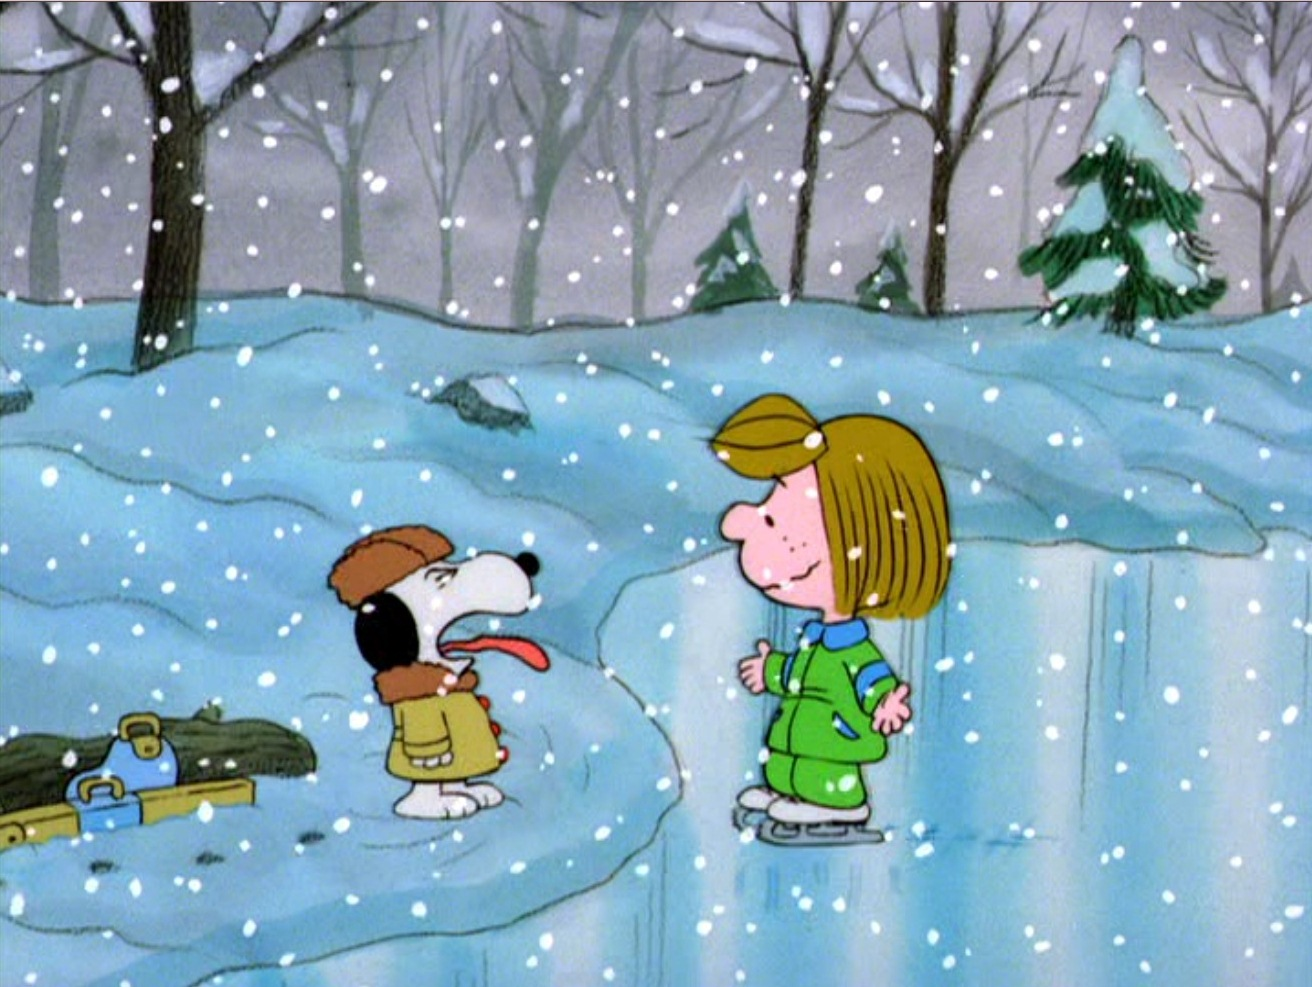 her early morning practices are taking a toll peppermint patty keeps falling asleep at school her friend marcie casey carlson does her best to keep her - Charlie Brown Christmas Streaming